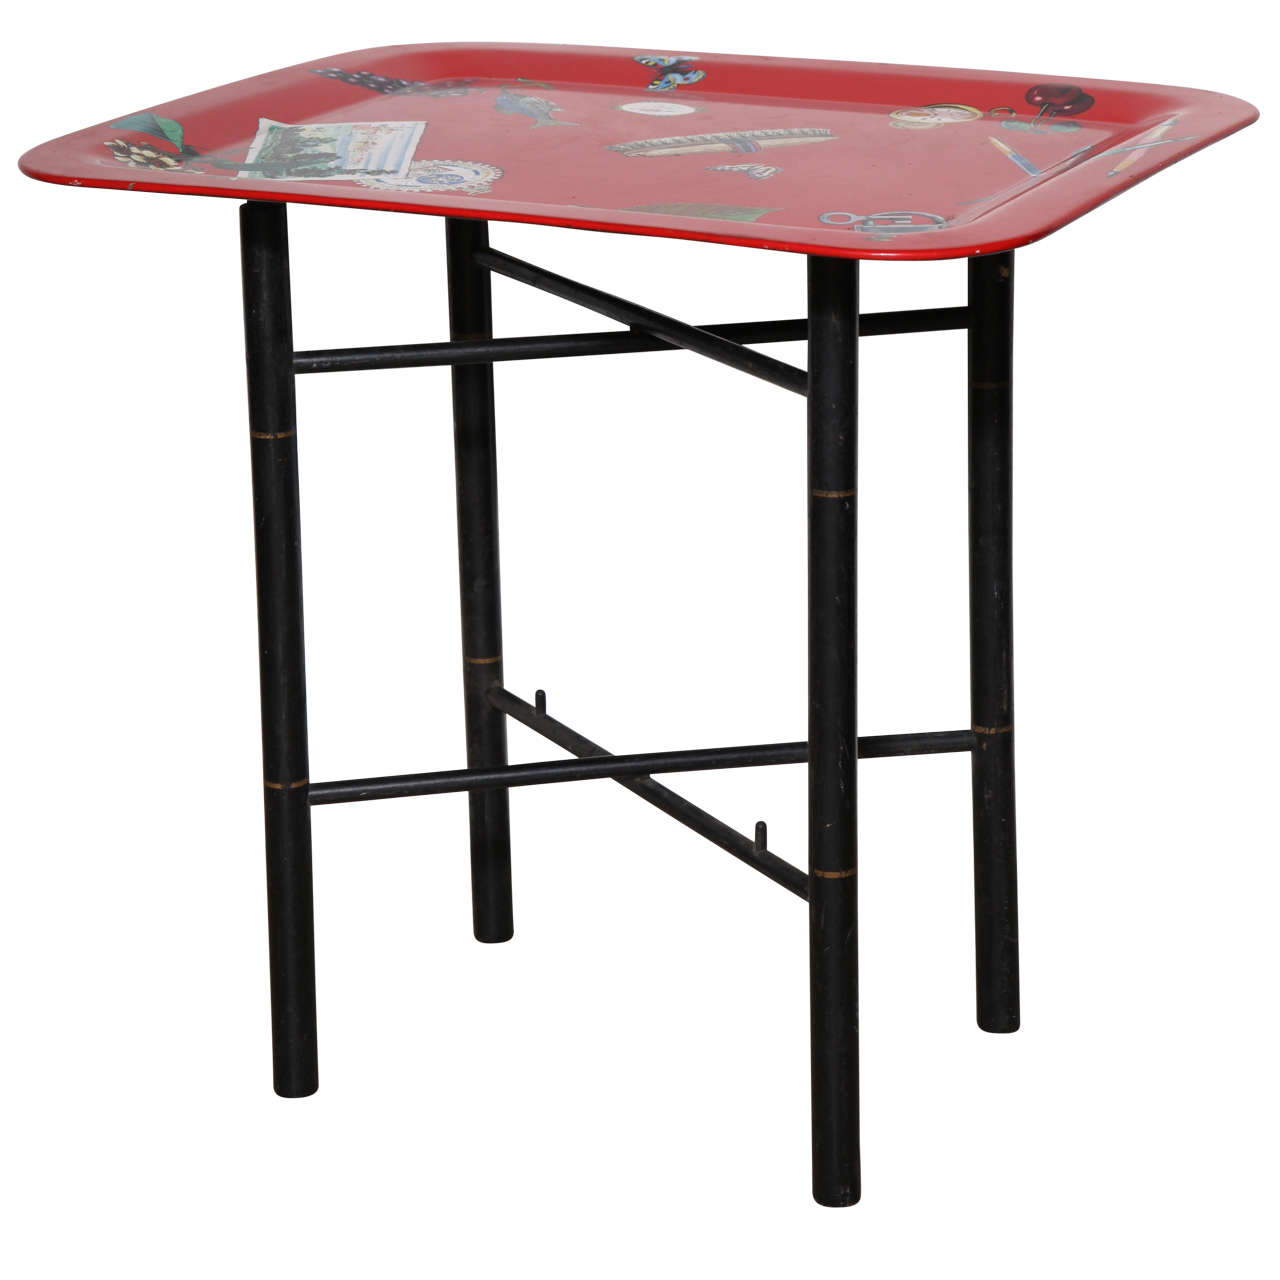 Piero Fornasetti Trompe Lu0027Oeil Red Tray Table With Black Lacquer Stand, ...